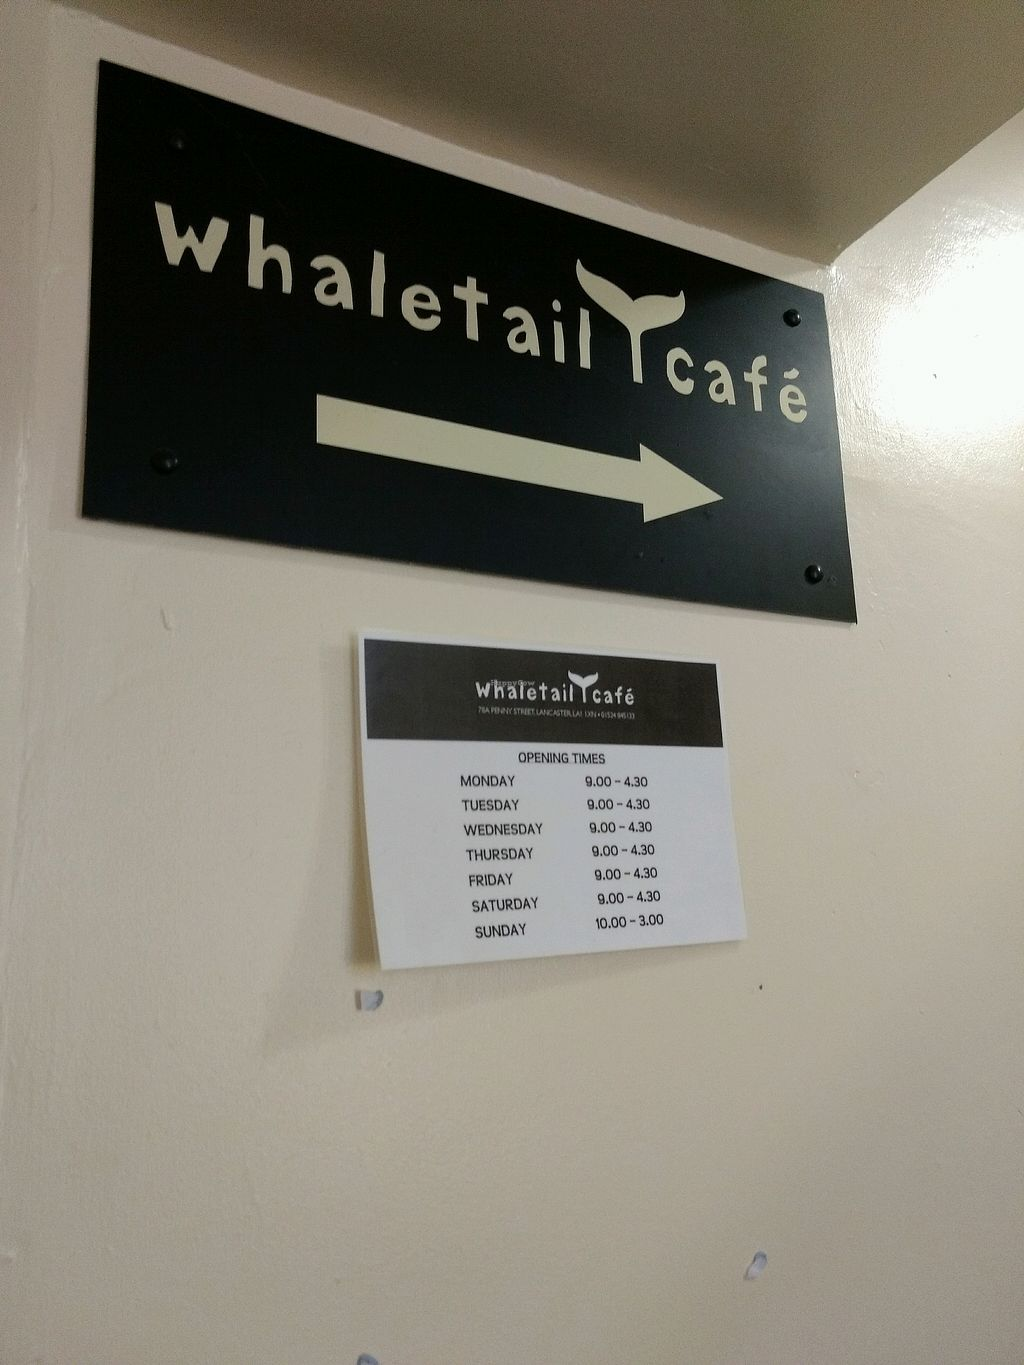 """Photo of The Whale Tail Cafe  by <a href=""""/members/profile/craigmc"""">craigmc</a> <br/>this way <br/> April 8, 2018  - <a href='/contact/abuse/image/791/382438'>Report</a>"""